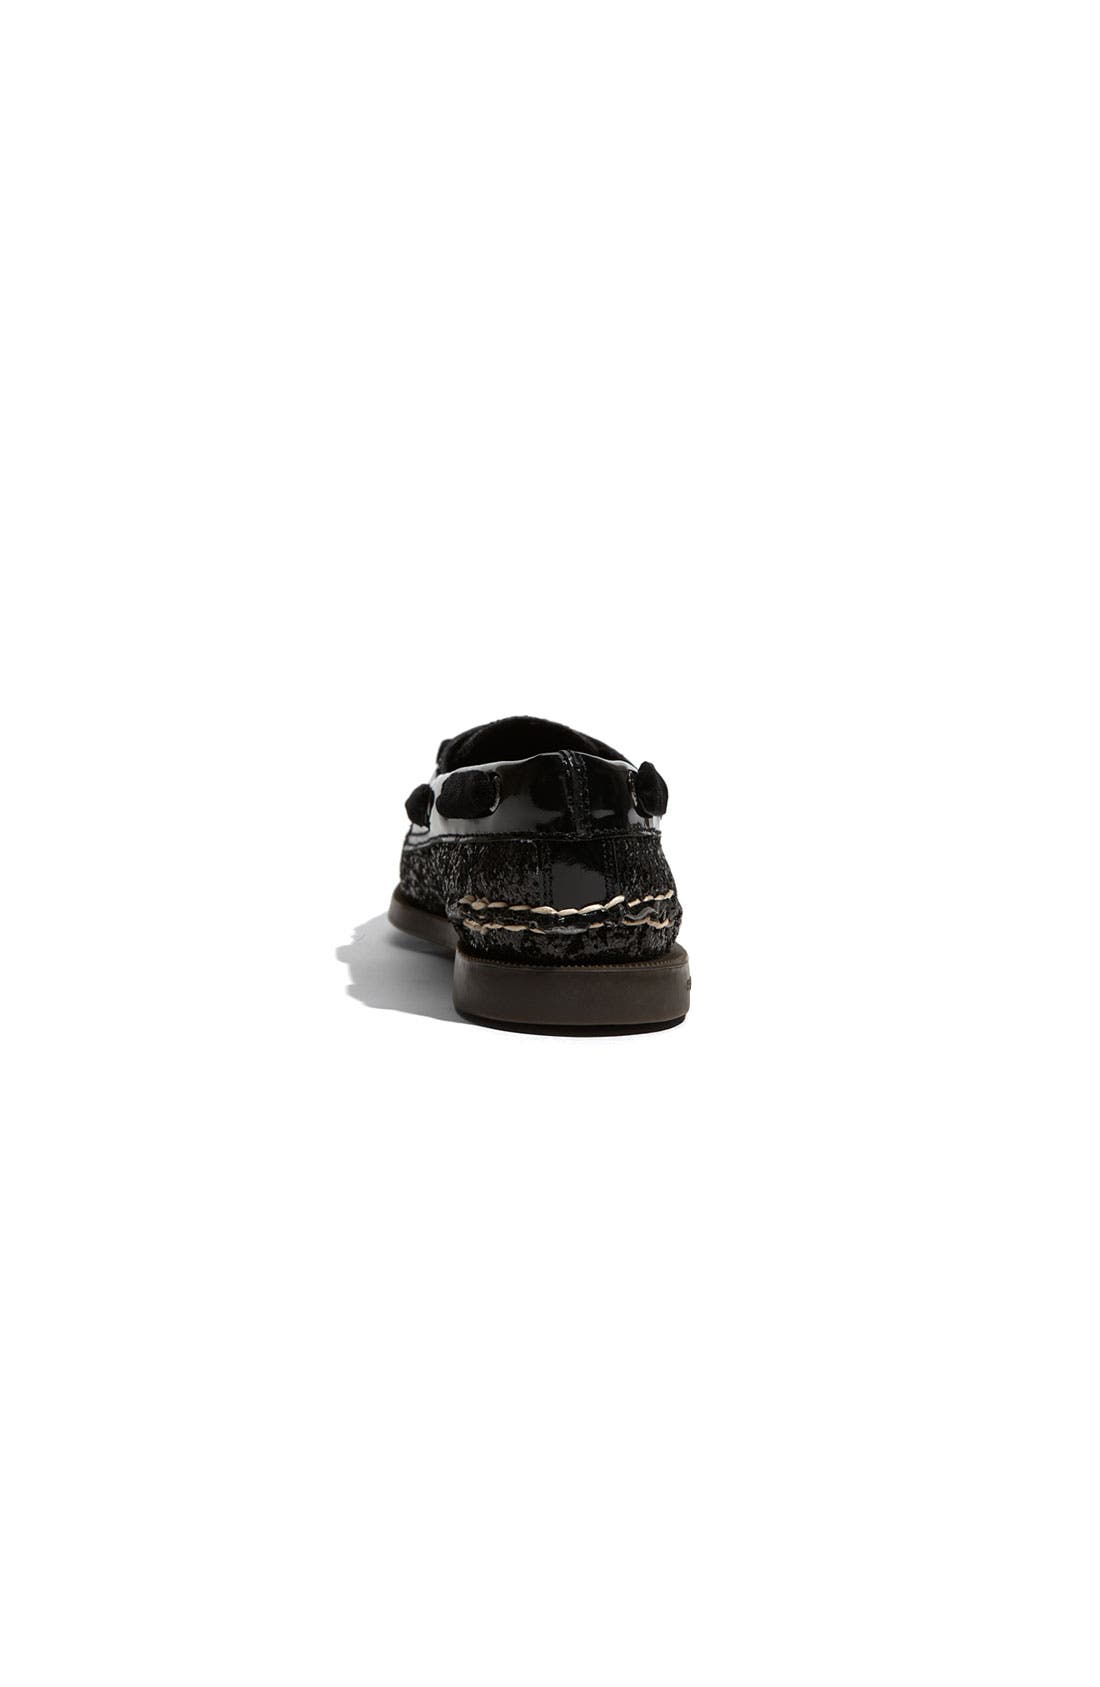 SPERRY,                             Top-Sider<sup>®</sup> 'Authentic Original Glitter' Boat Shoe,                             Alternate thumbnail 3, color,                             005